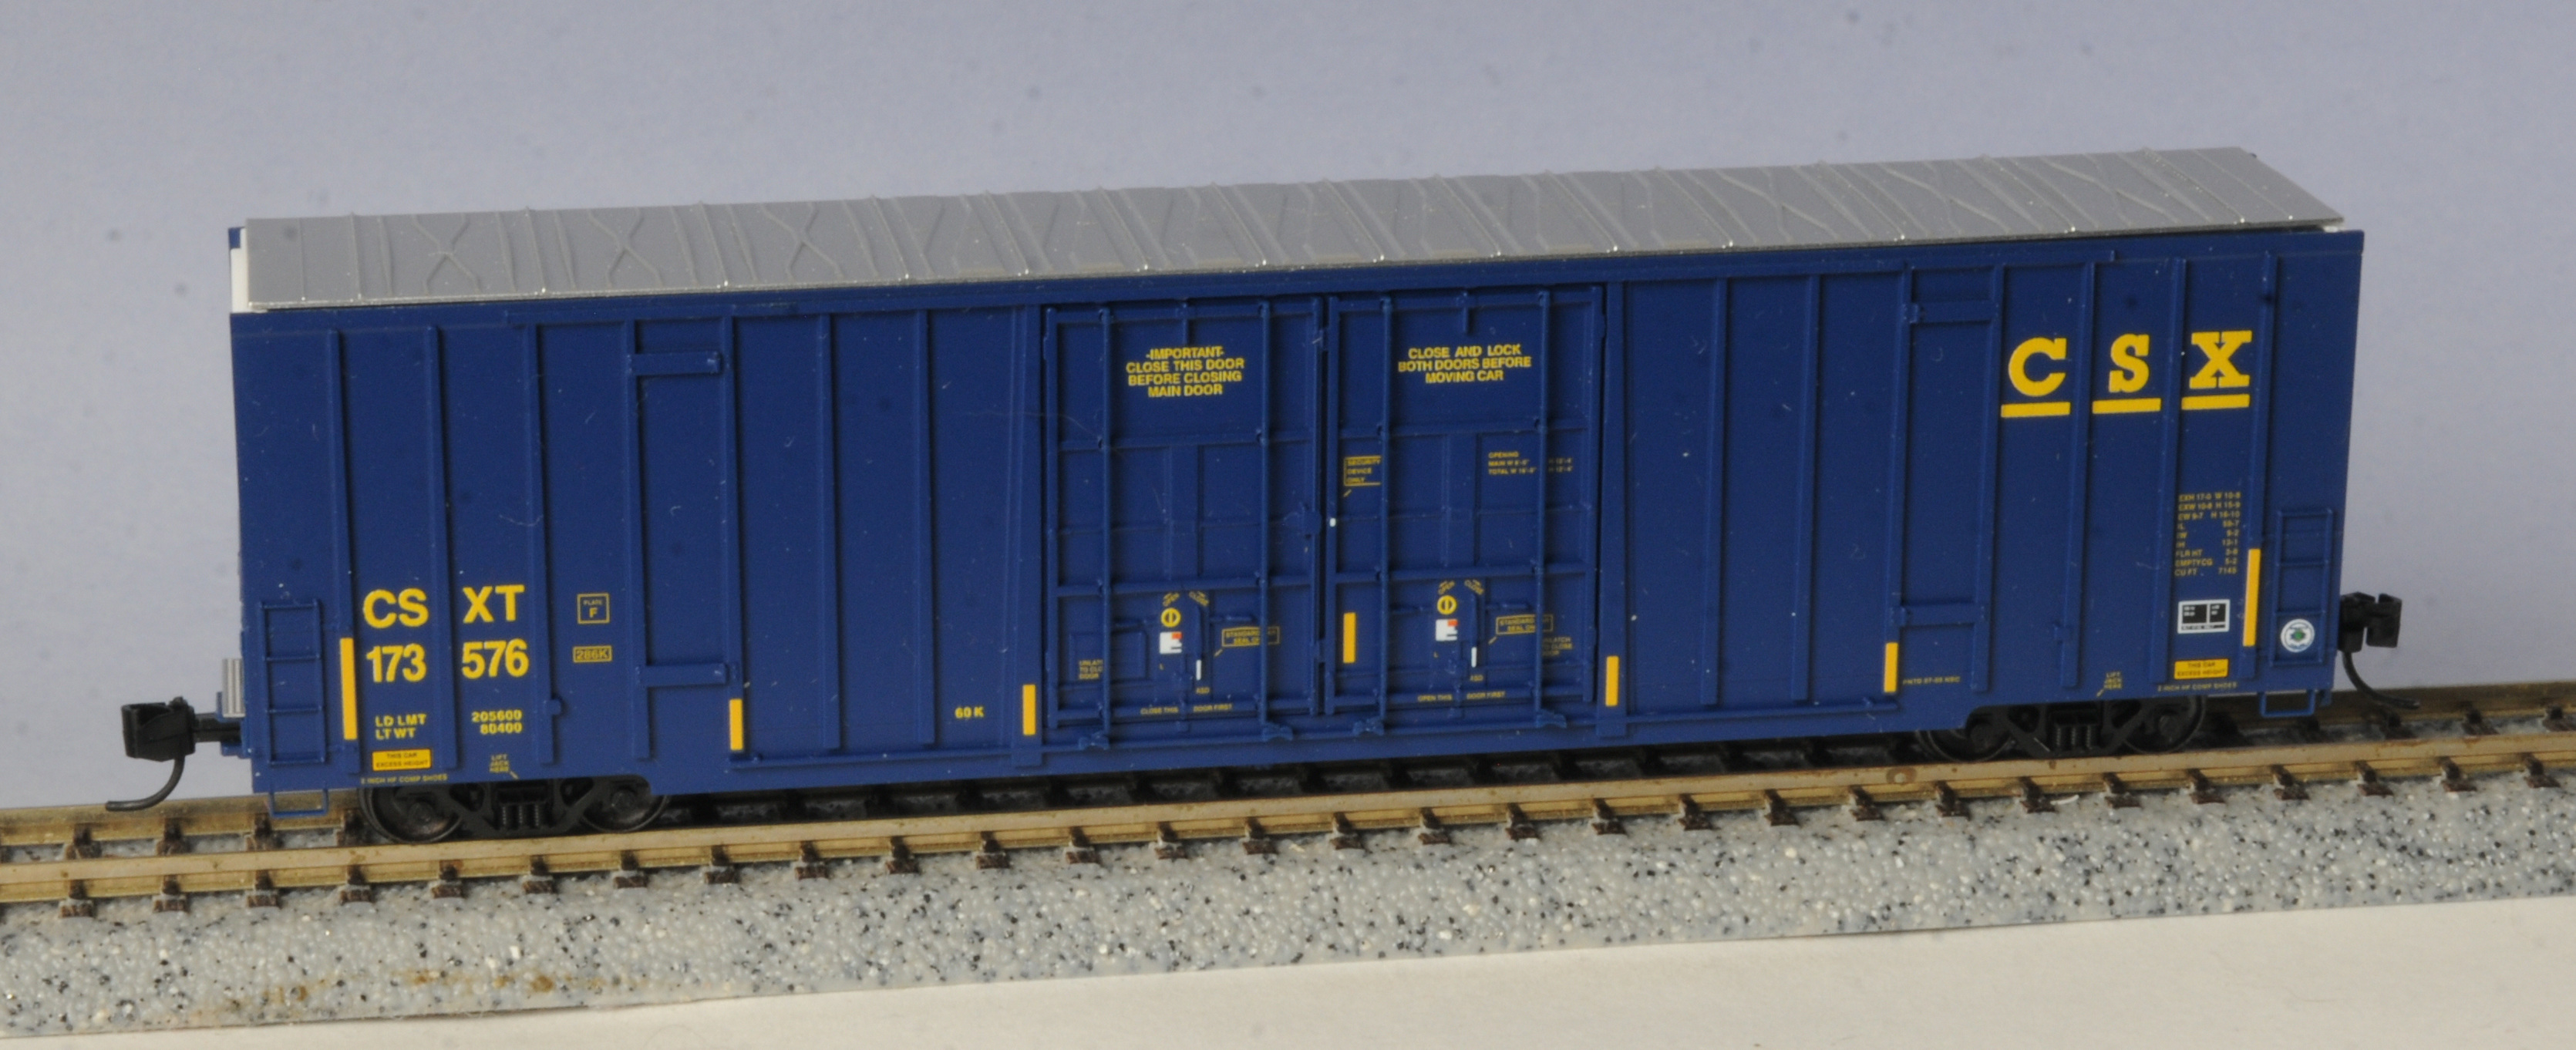 N Scale - Micro-Trains - 123 53 030 - Boxcar, 60 Foot, NSC Excess Height - CSX Transportation - 173576